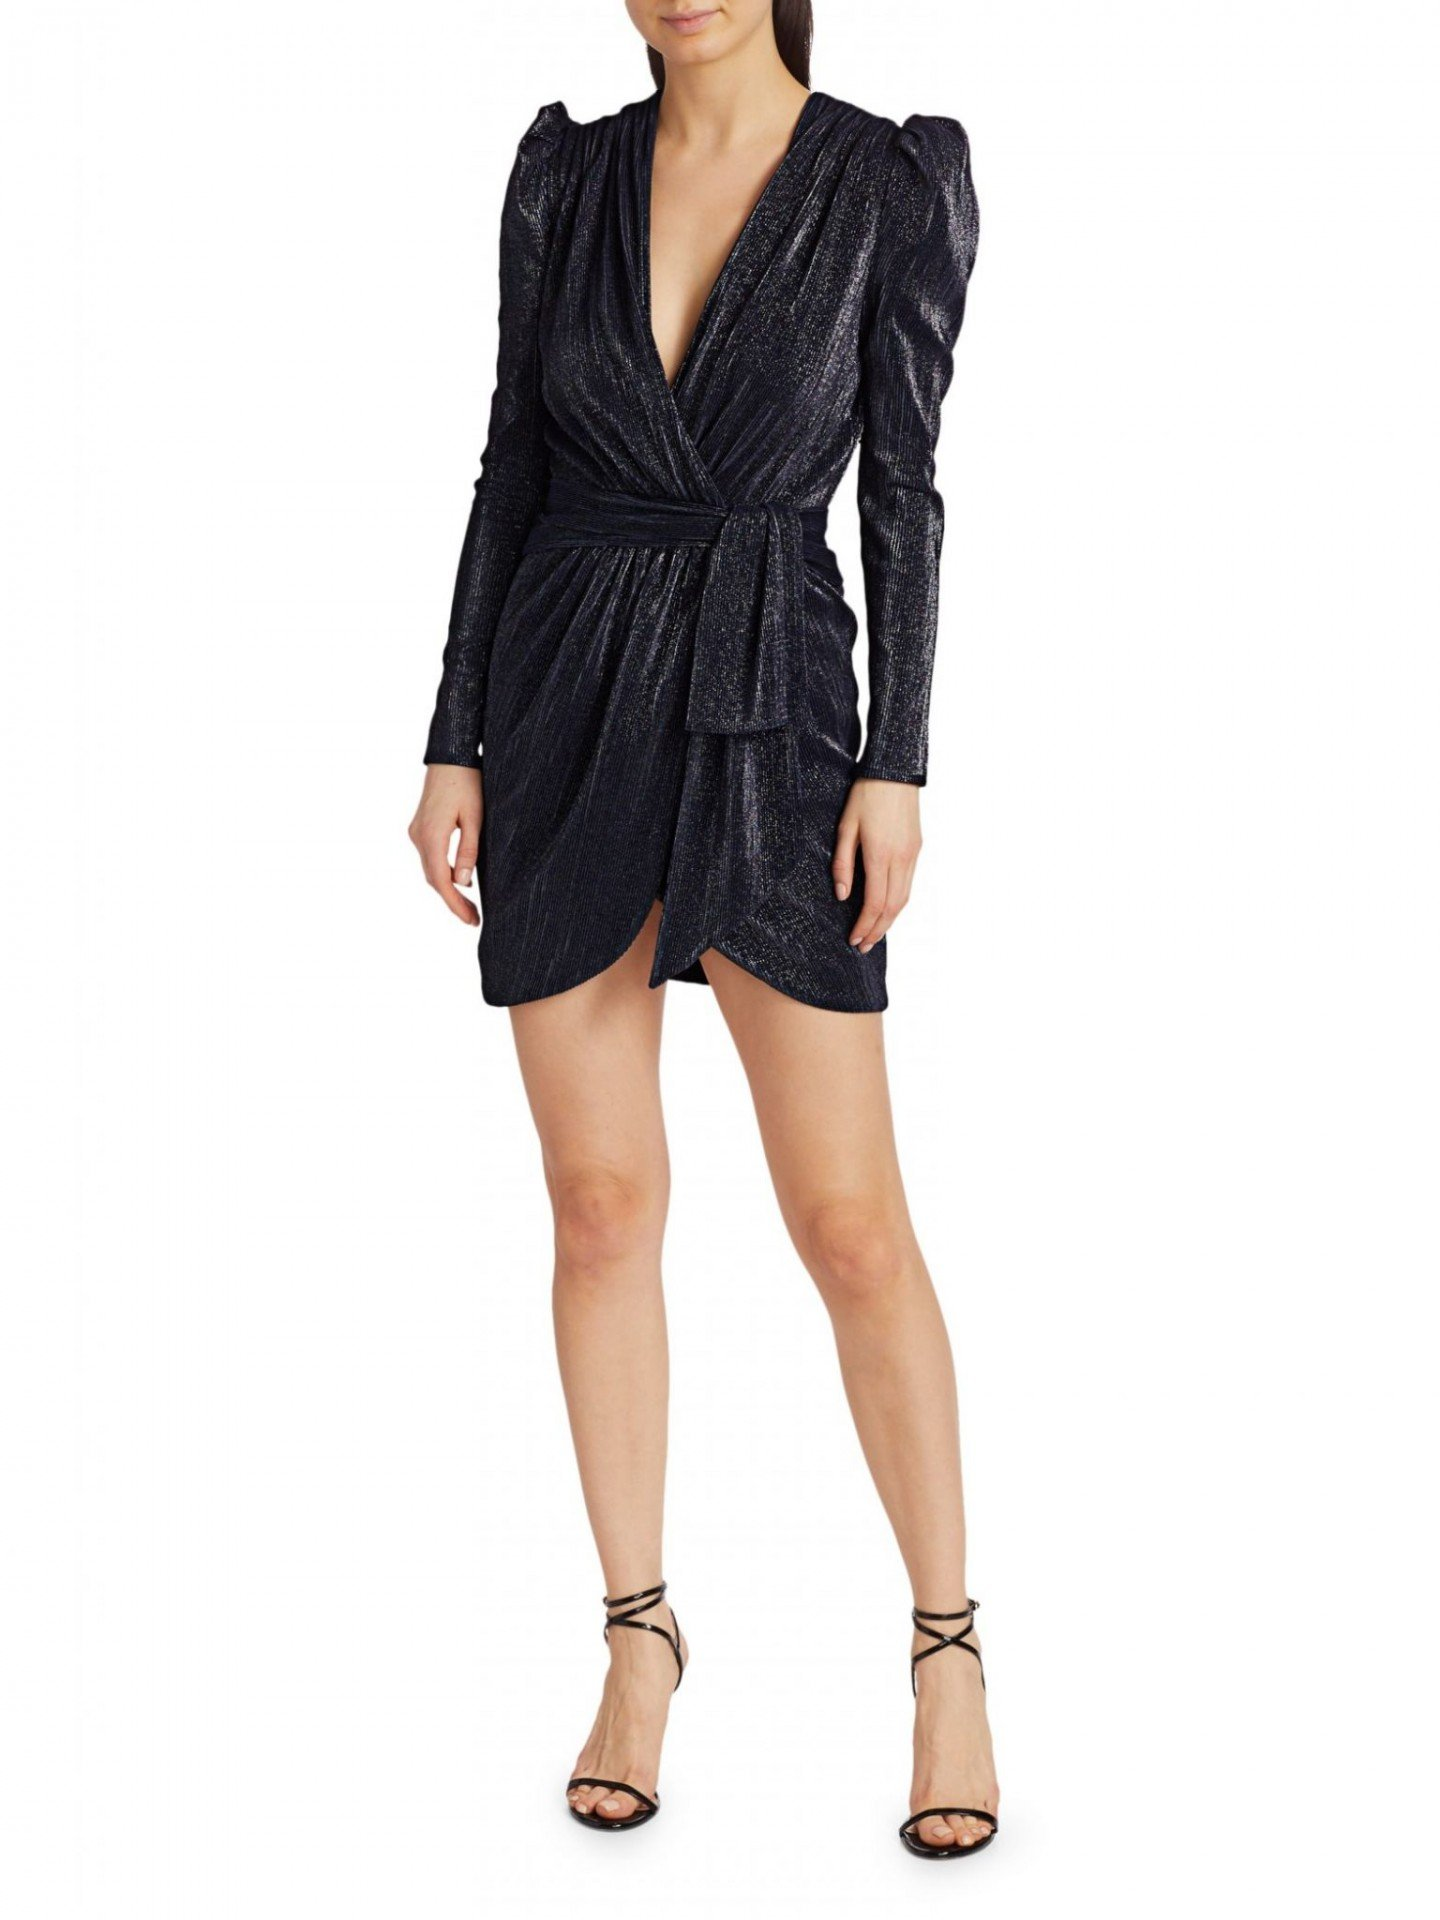 JONATHAN SIMKHAI Metallic Puff-Sleeve Wrap Dress